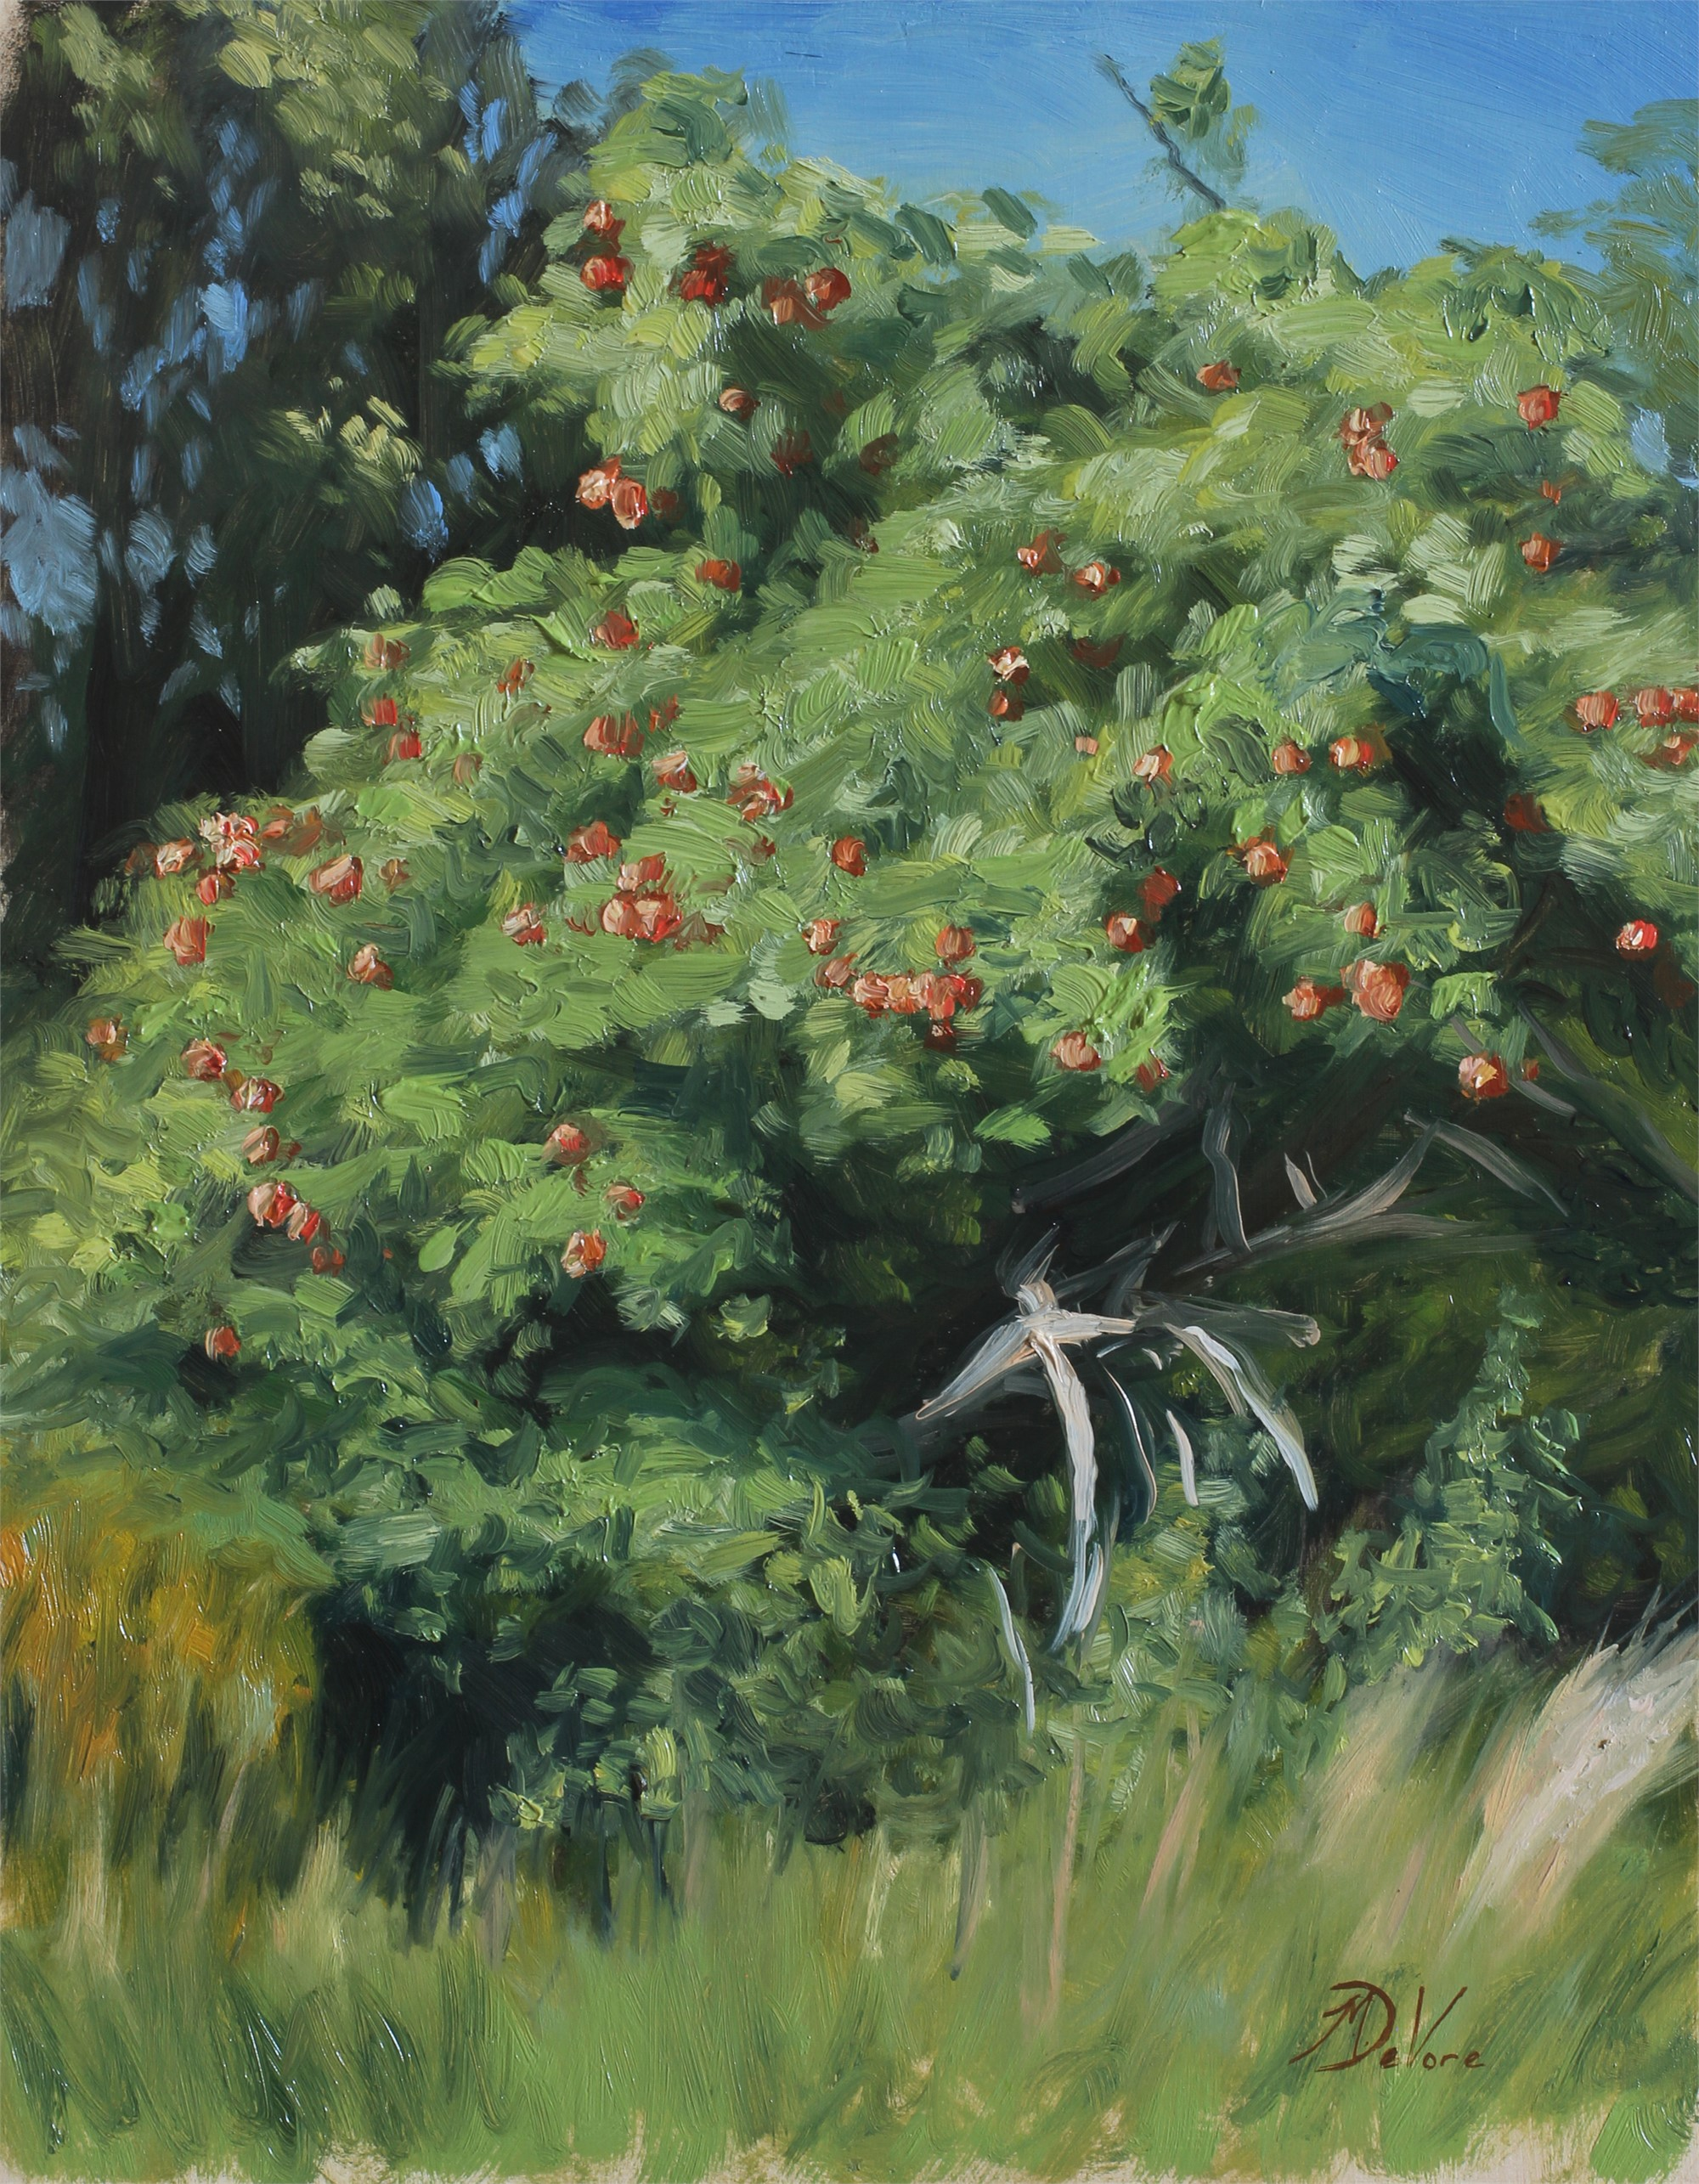 Apple Tree by Michael DeVore